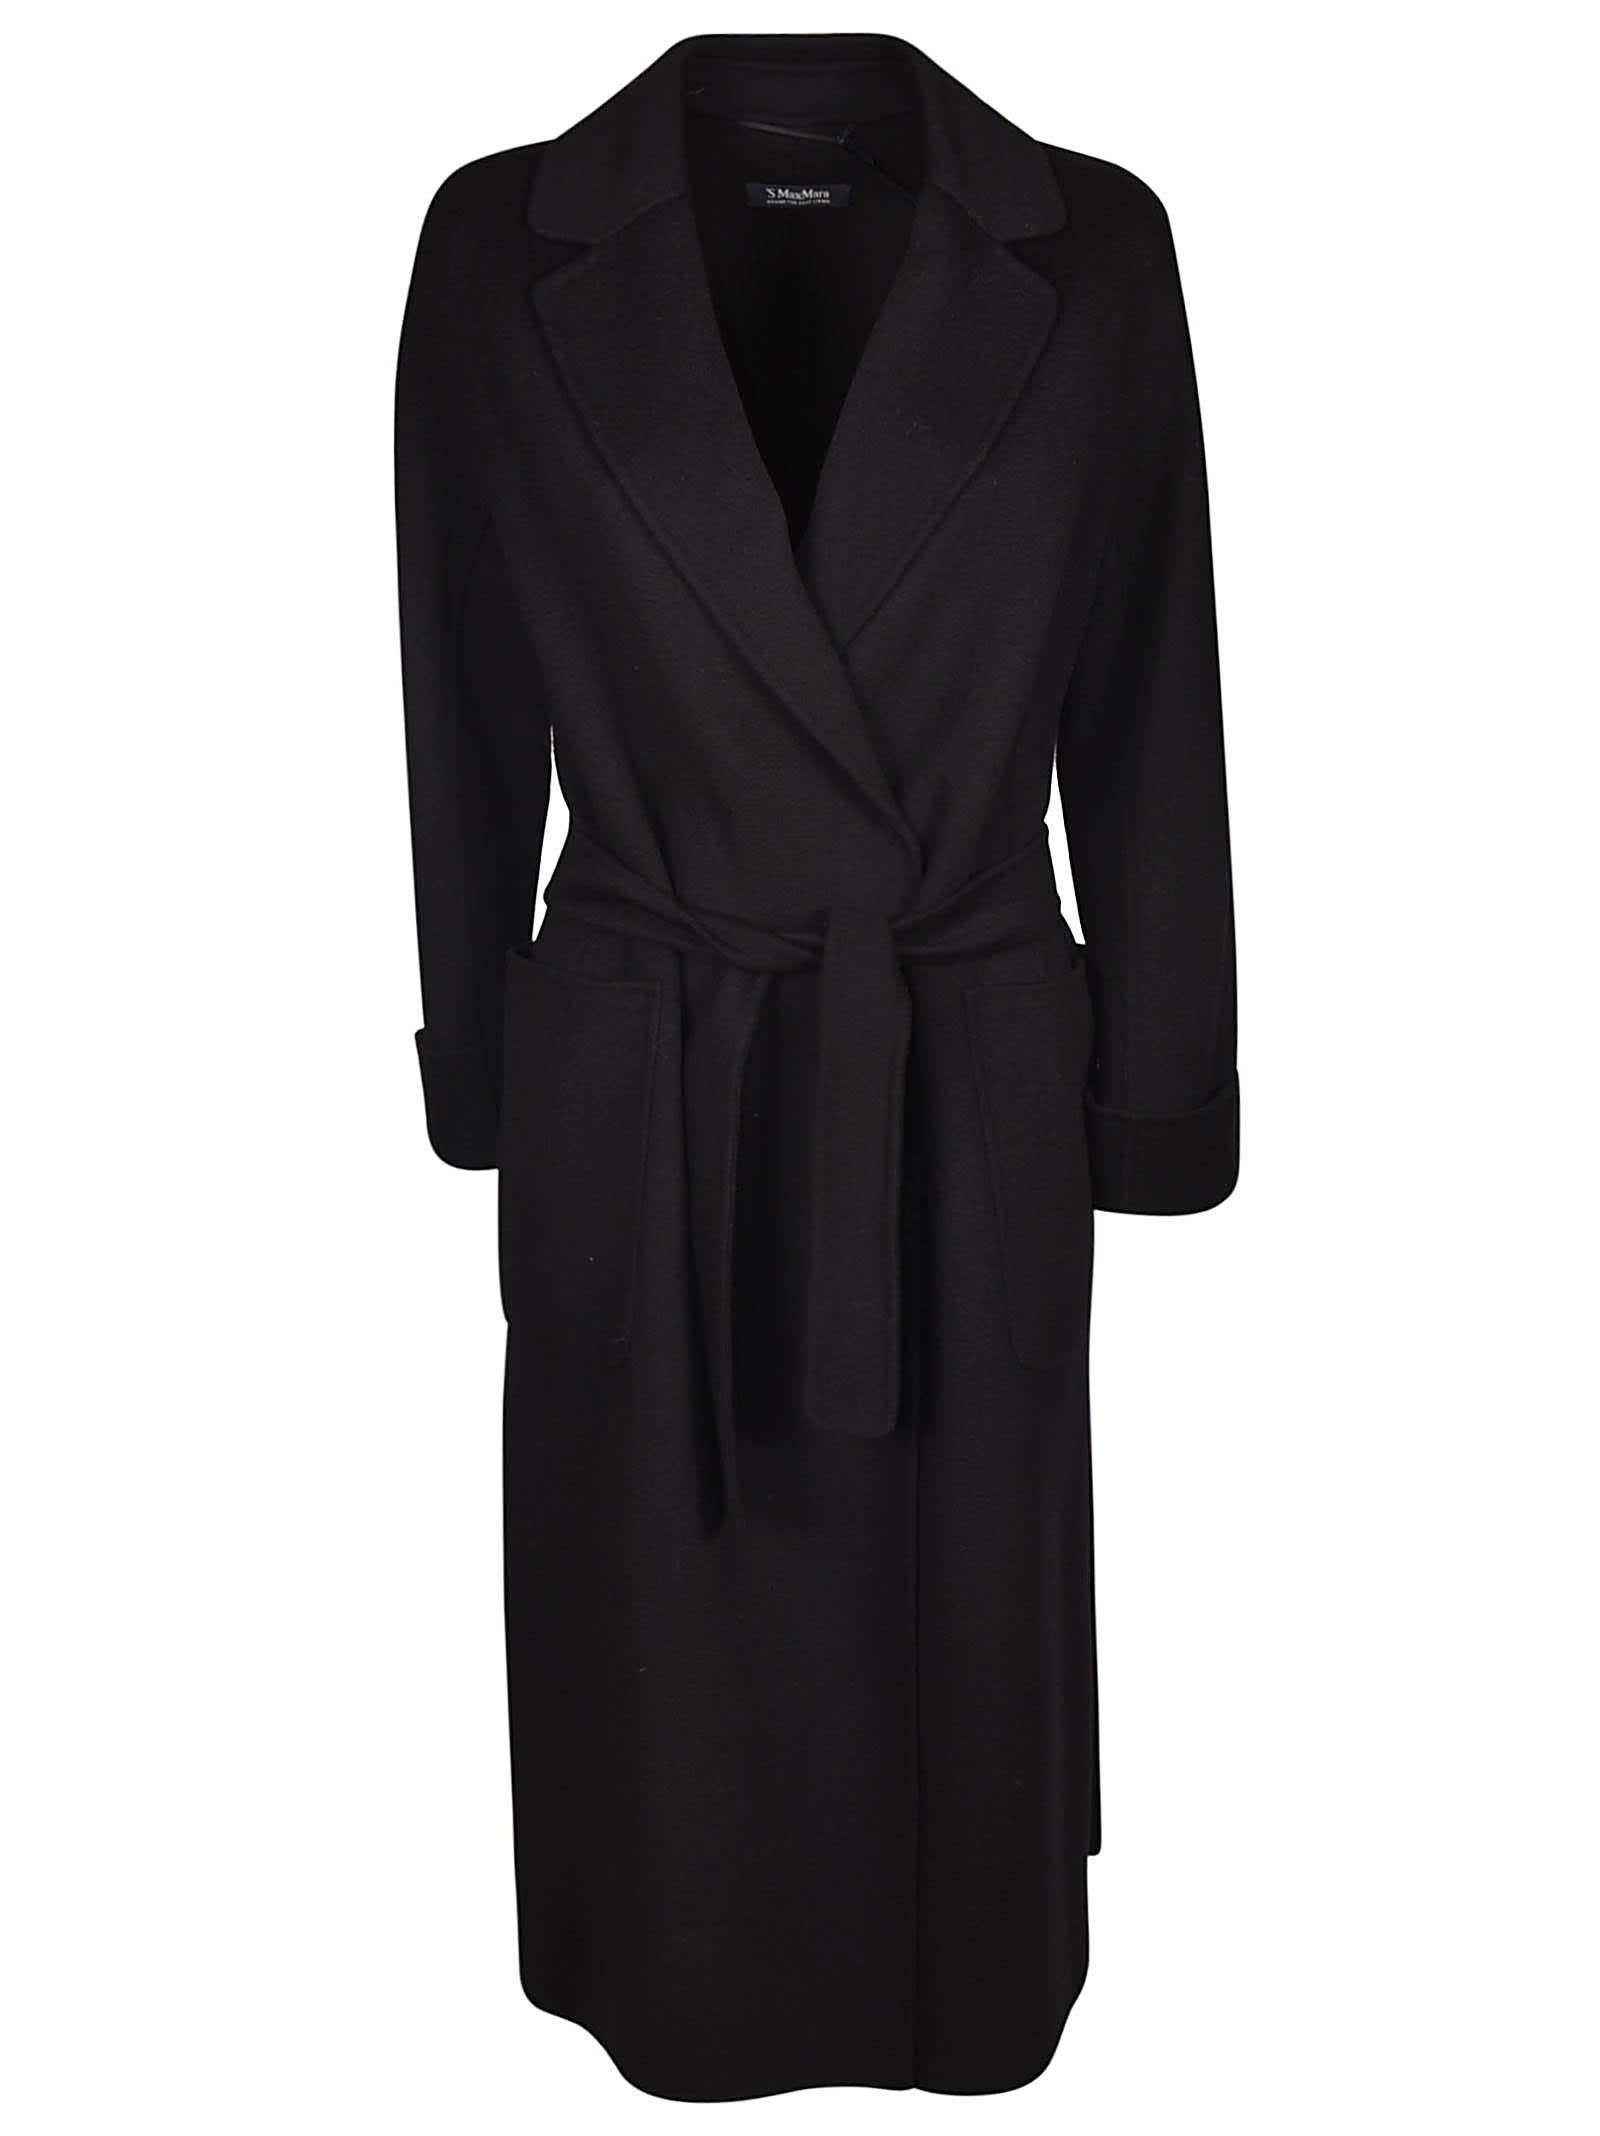 S Max Mara Here is The Cube Long Length Belted Coat